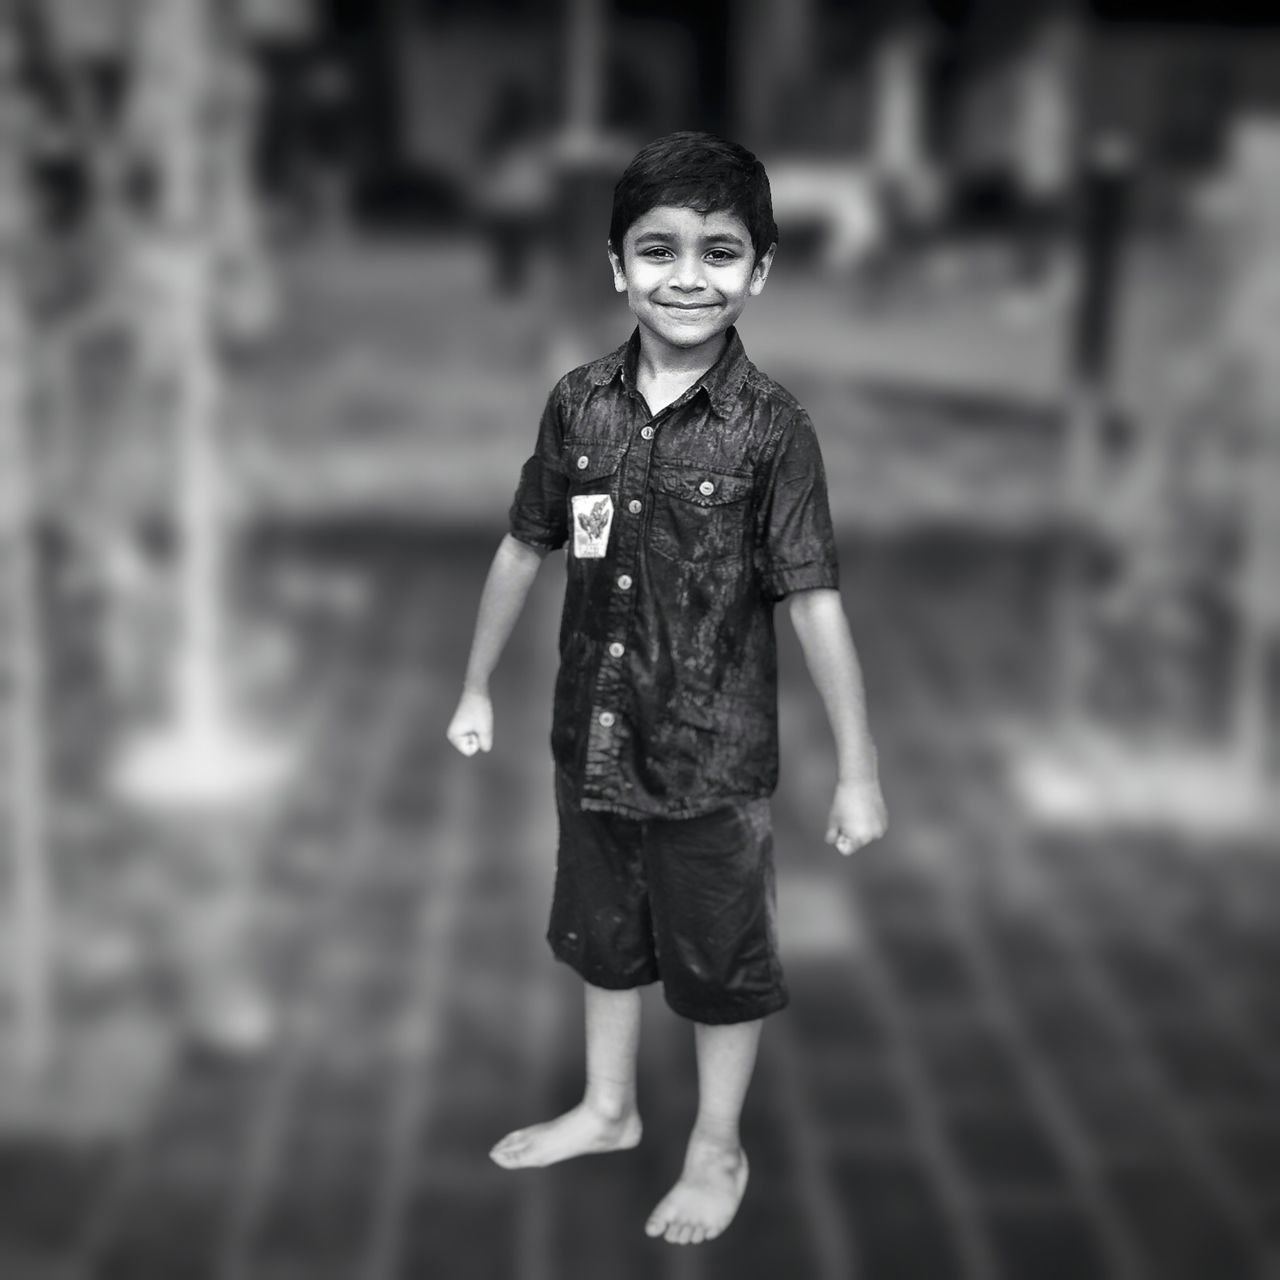 Child Childhood Full Length Looking At Camera Outdoors Smiling People Portrait Blackandwhite Joy Waterplay Asian